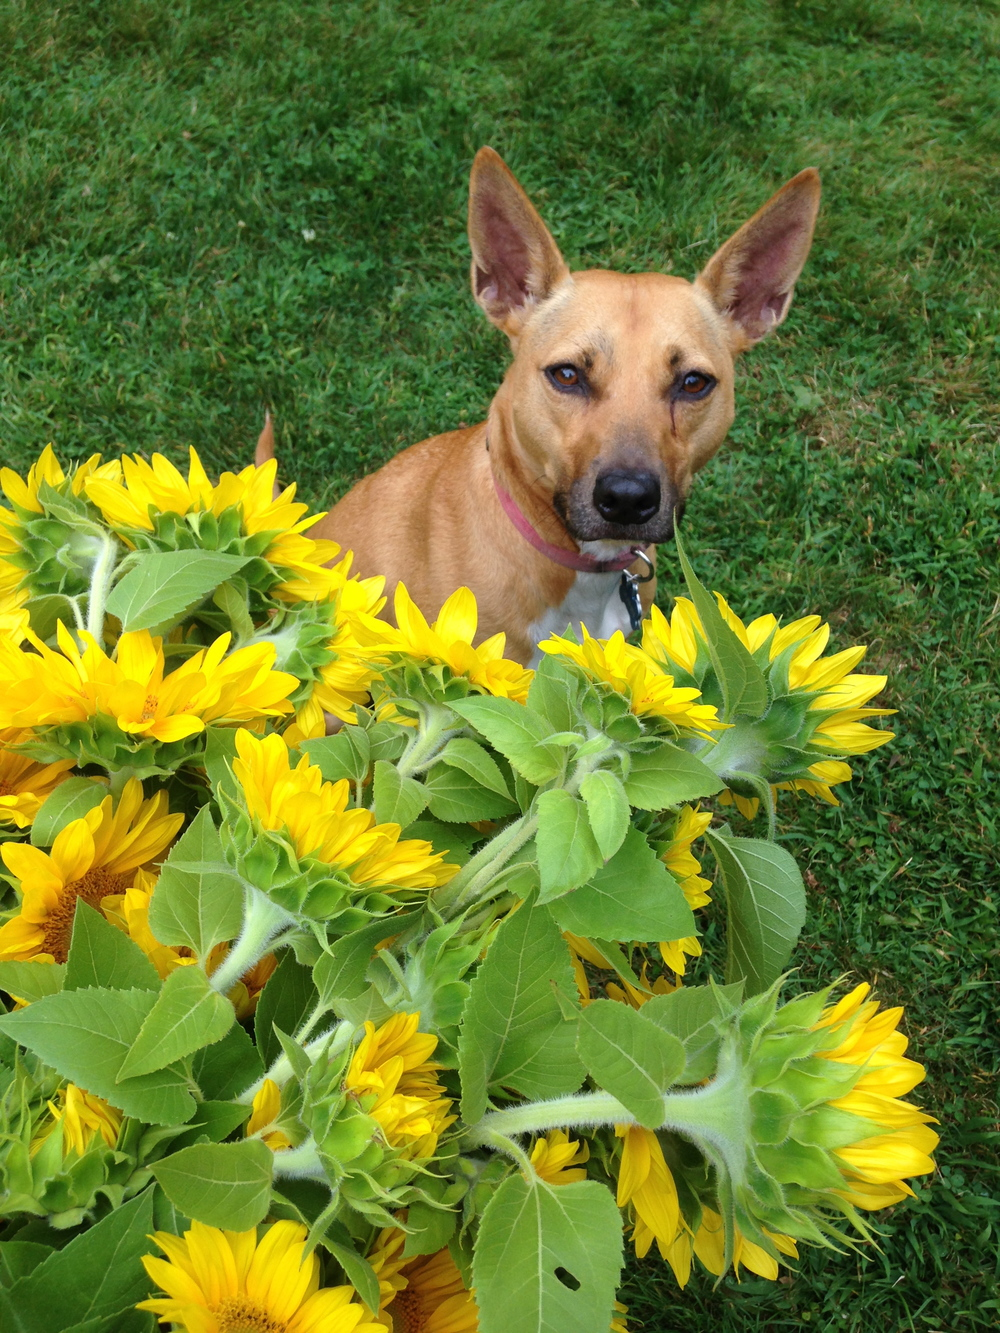 My grand dog is proud of her gorgeous bunches of sunflowers.